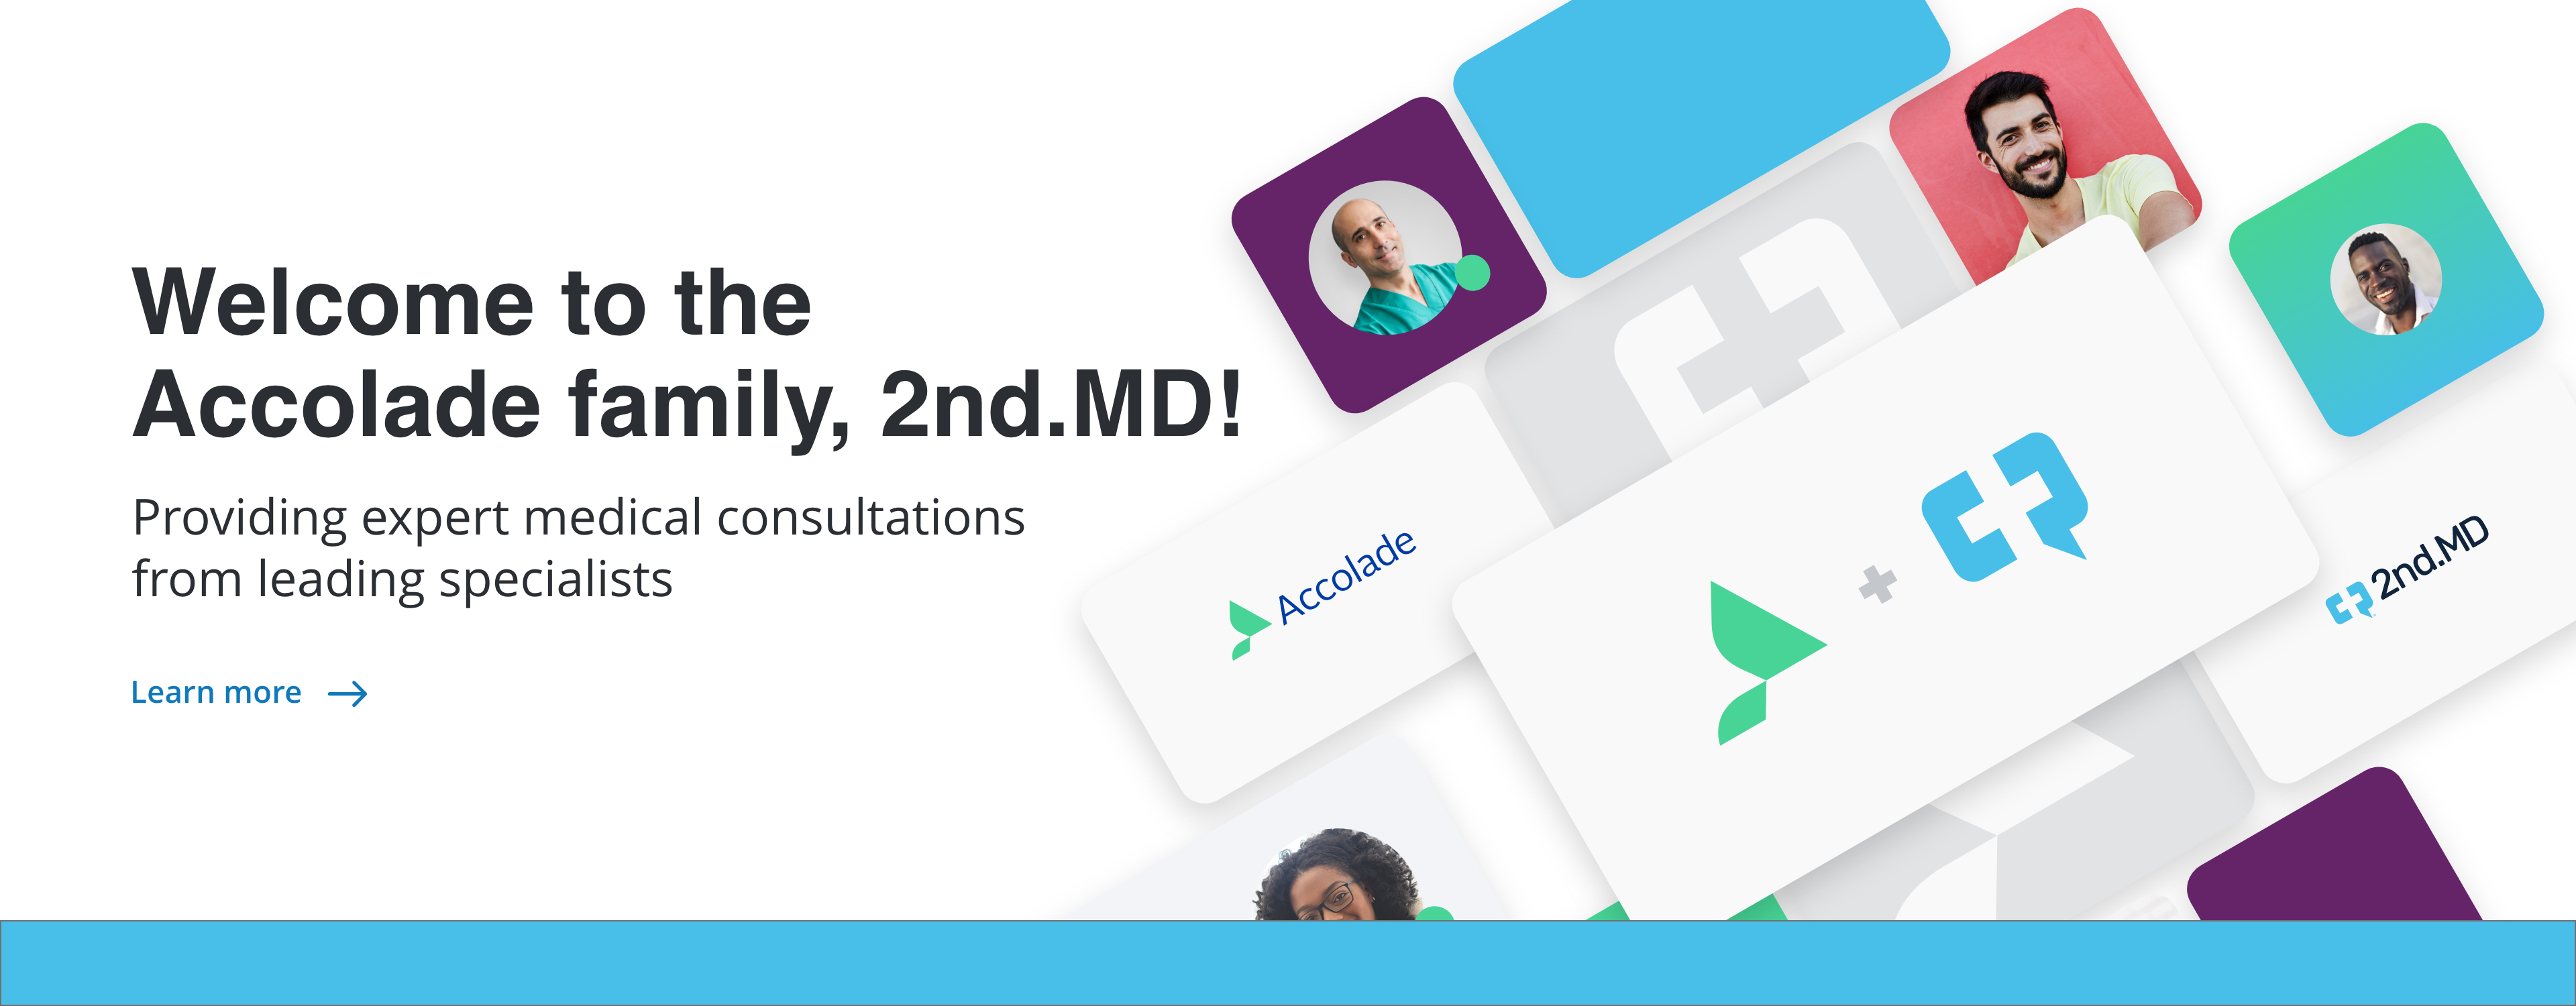 Learn more about 2nd.MD joining the Accolade family